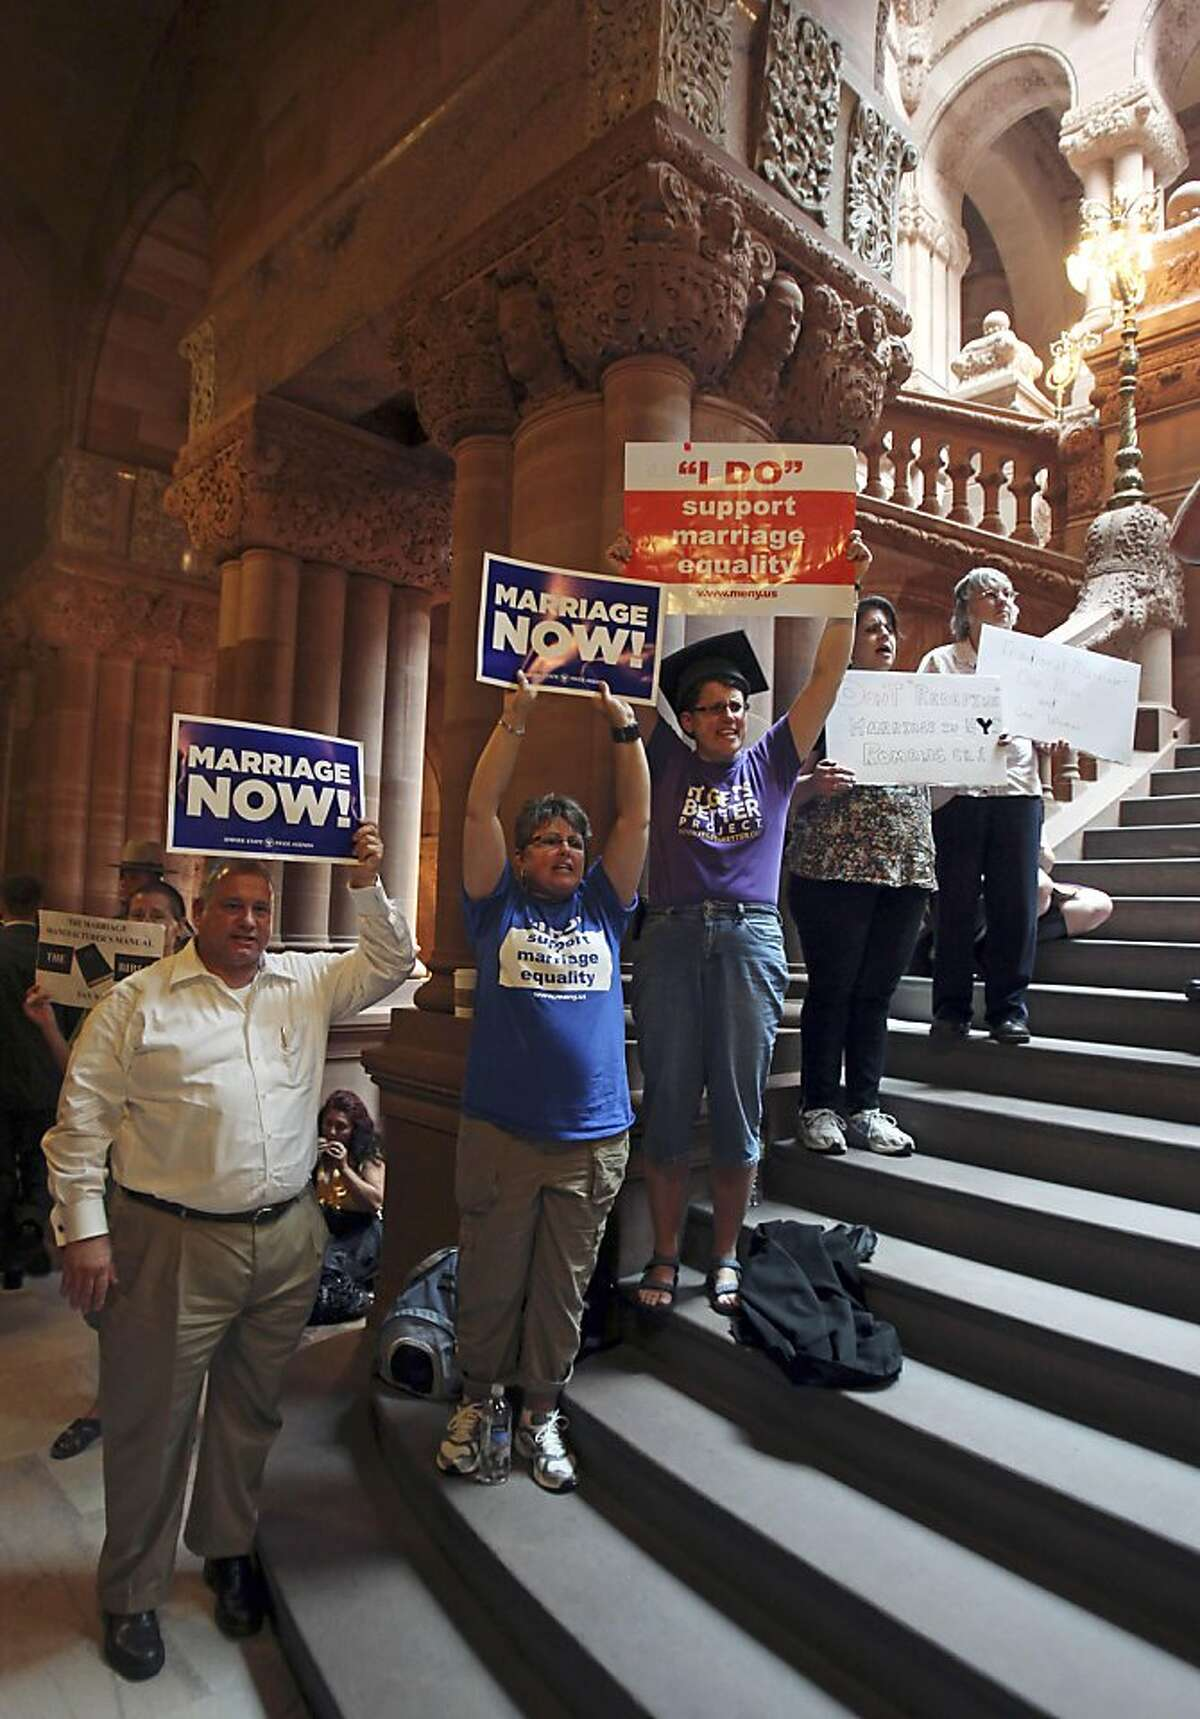 Gay marriage supporters and opponents hold signs in a hallway at the Capitol in Albany, N.Y., on Friday, June 24, 2011. Following the latest marathon session on Thursday, the Senate Republican majority plans to again take up a gay marriage bill that couldbe pivotal moment in the national gay rights movement.